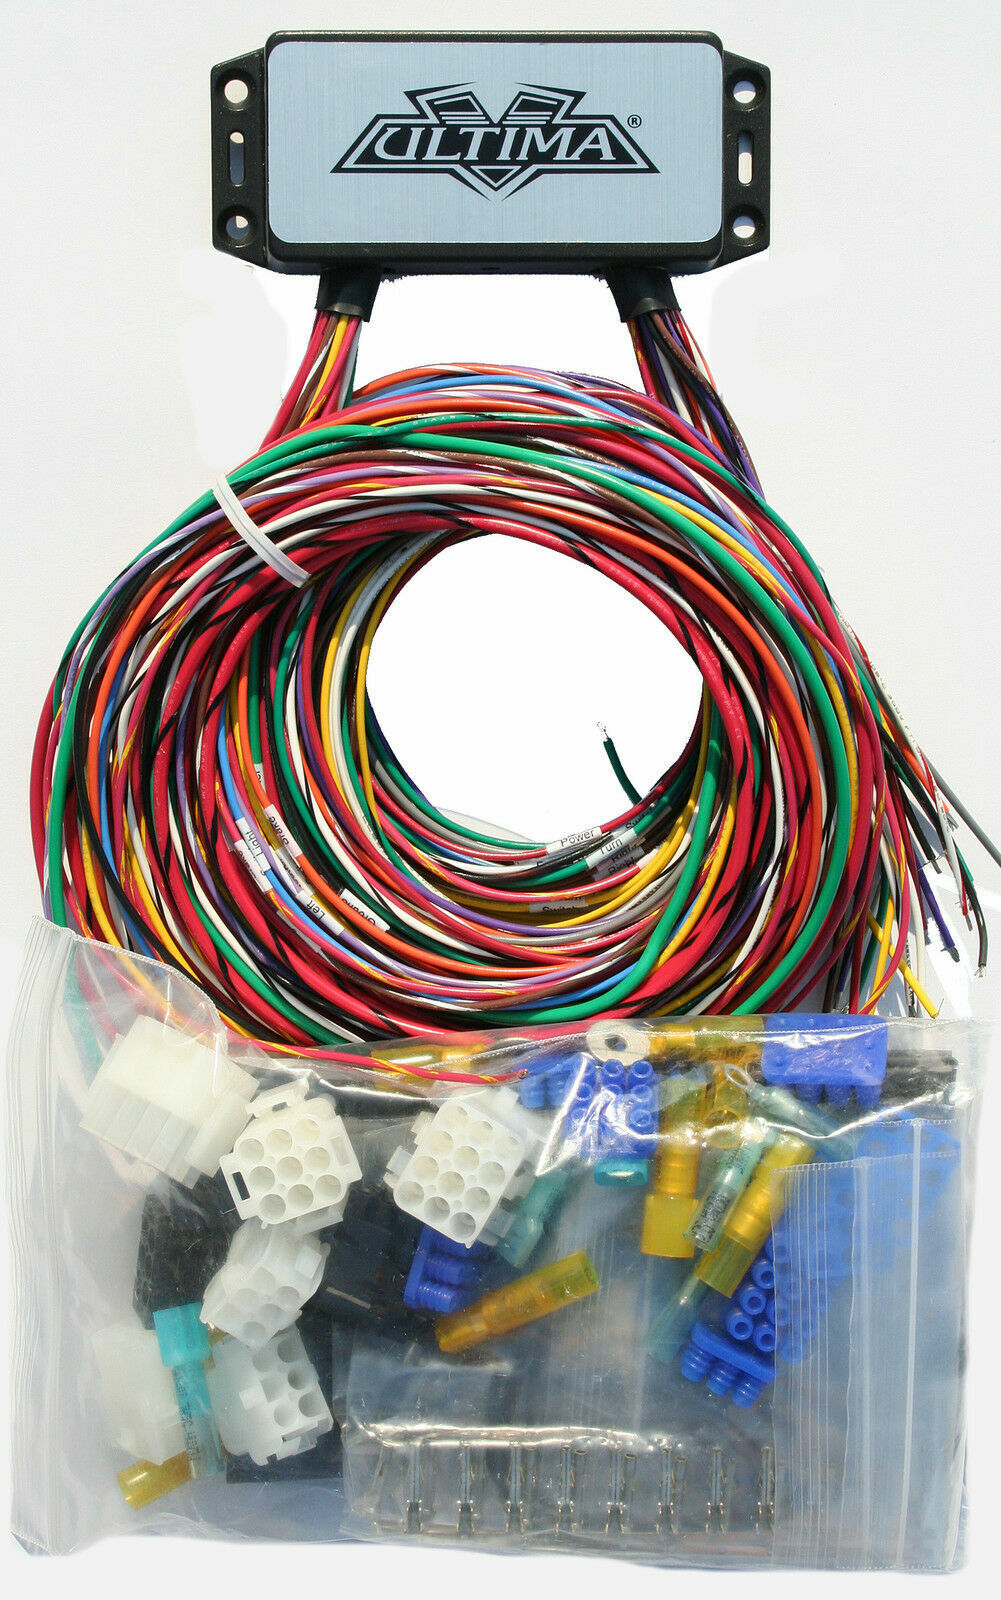 Ultima Plus Compact Electronic Wiring Harness Kit Bobber Chopper Harley on ultima electronic wiring system, ultima motor wiring diagram, ultima harness 18 530,